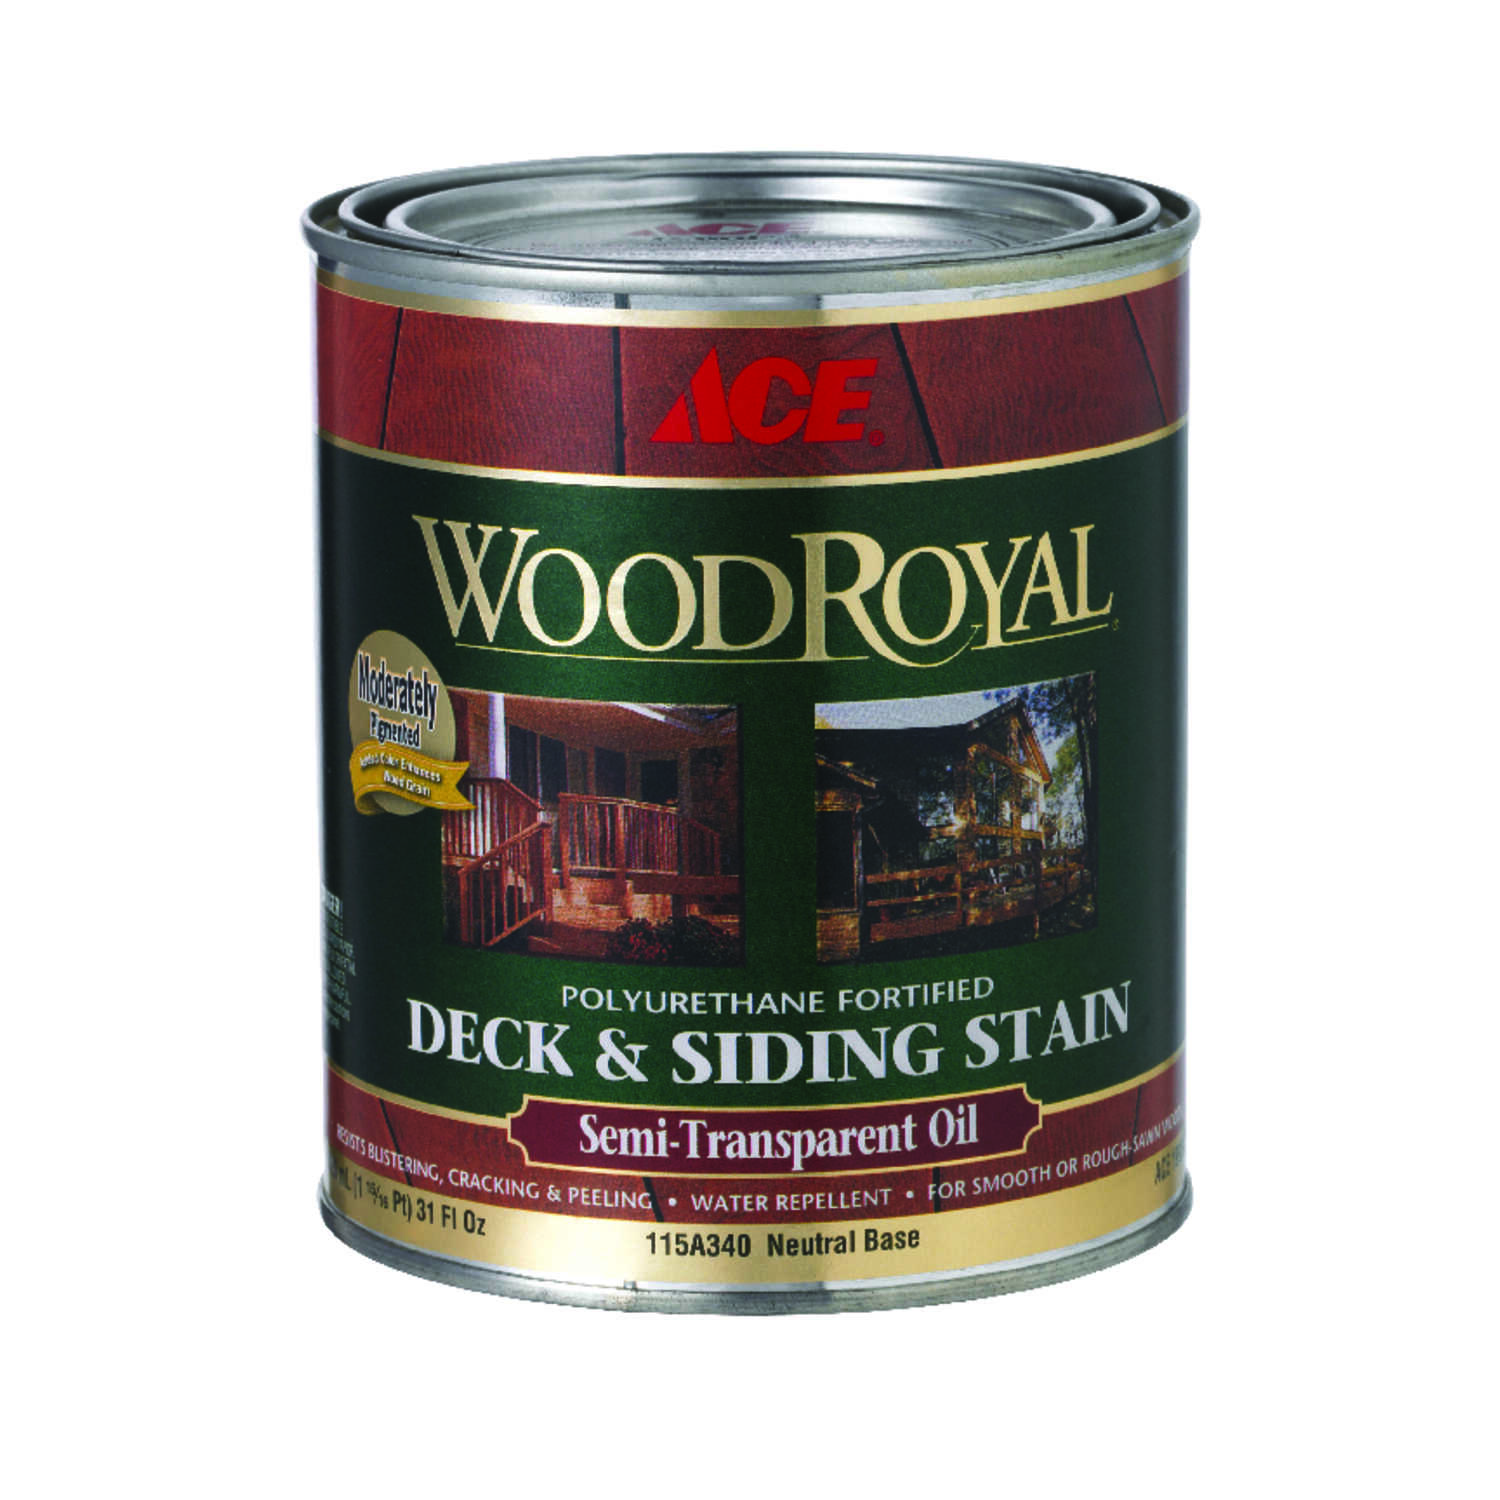 Ace  Wood Royal  Semi-Transparent  Tintable Neutral Base  Penetrating Oil  Deck and Siding Stain  1